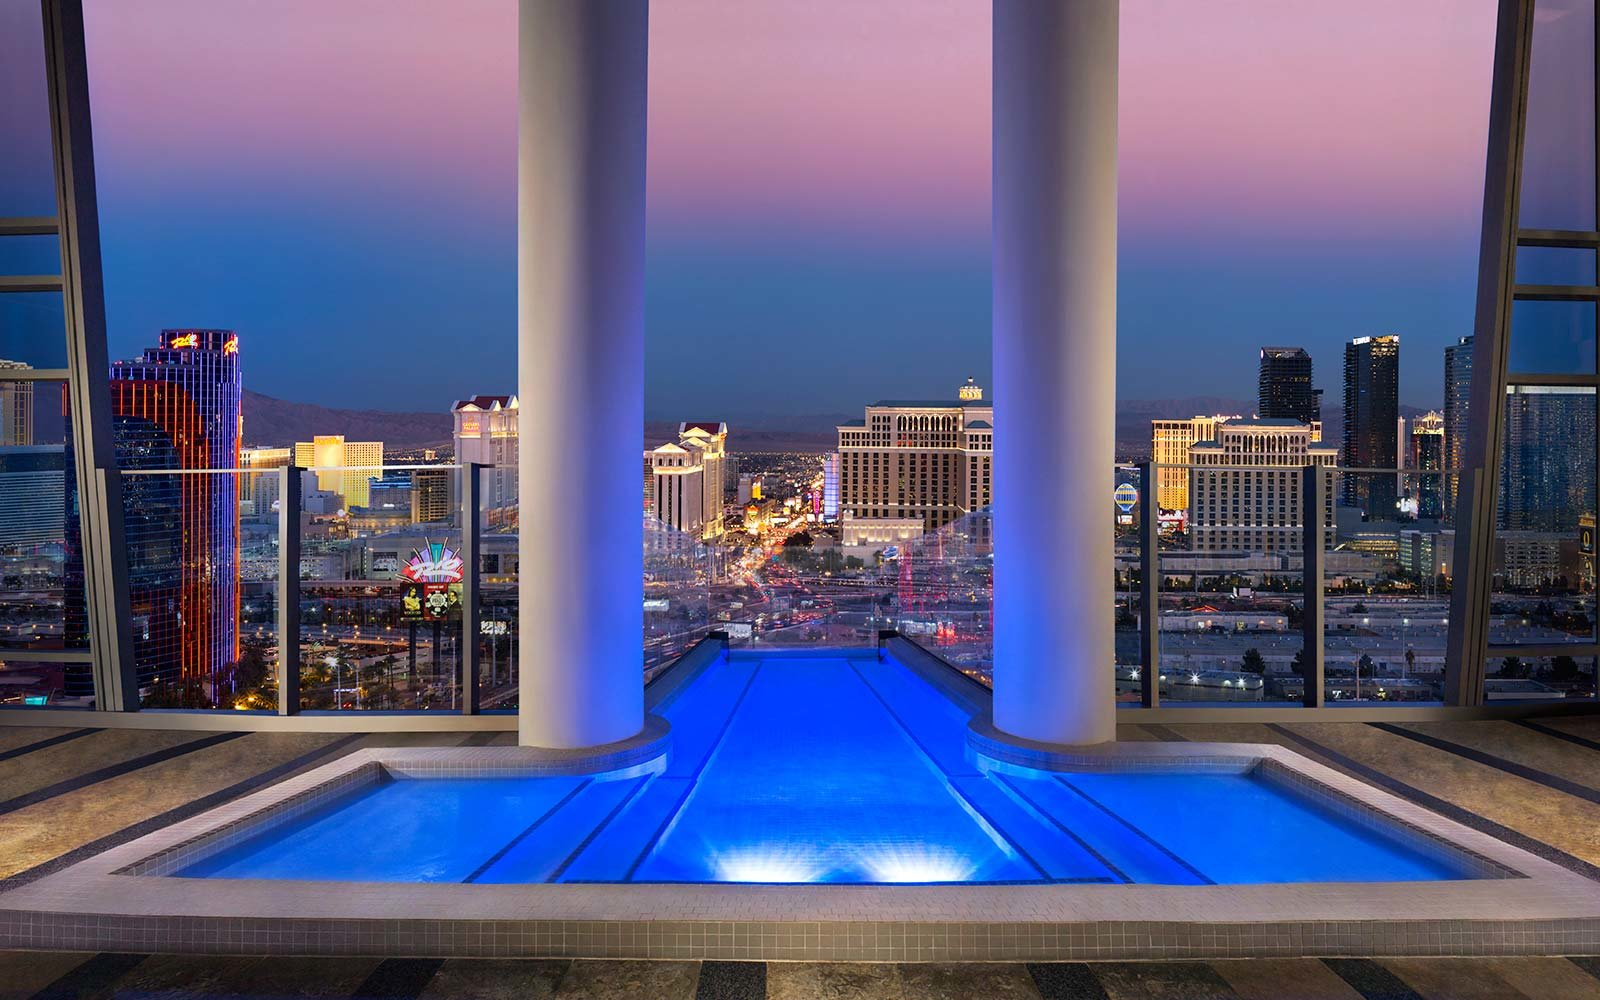 Palms Casino Resort Las Vegas Two-Story Sky Villa